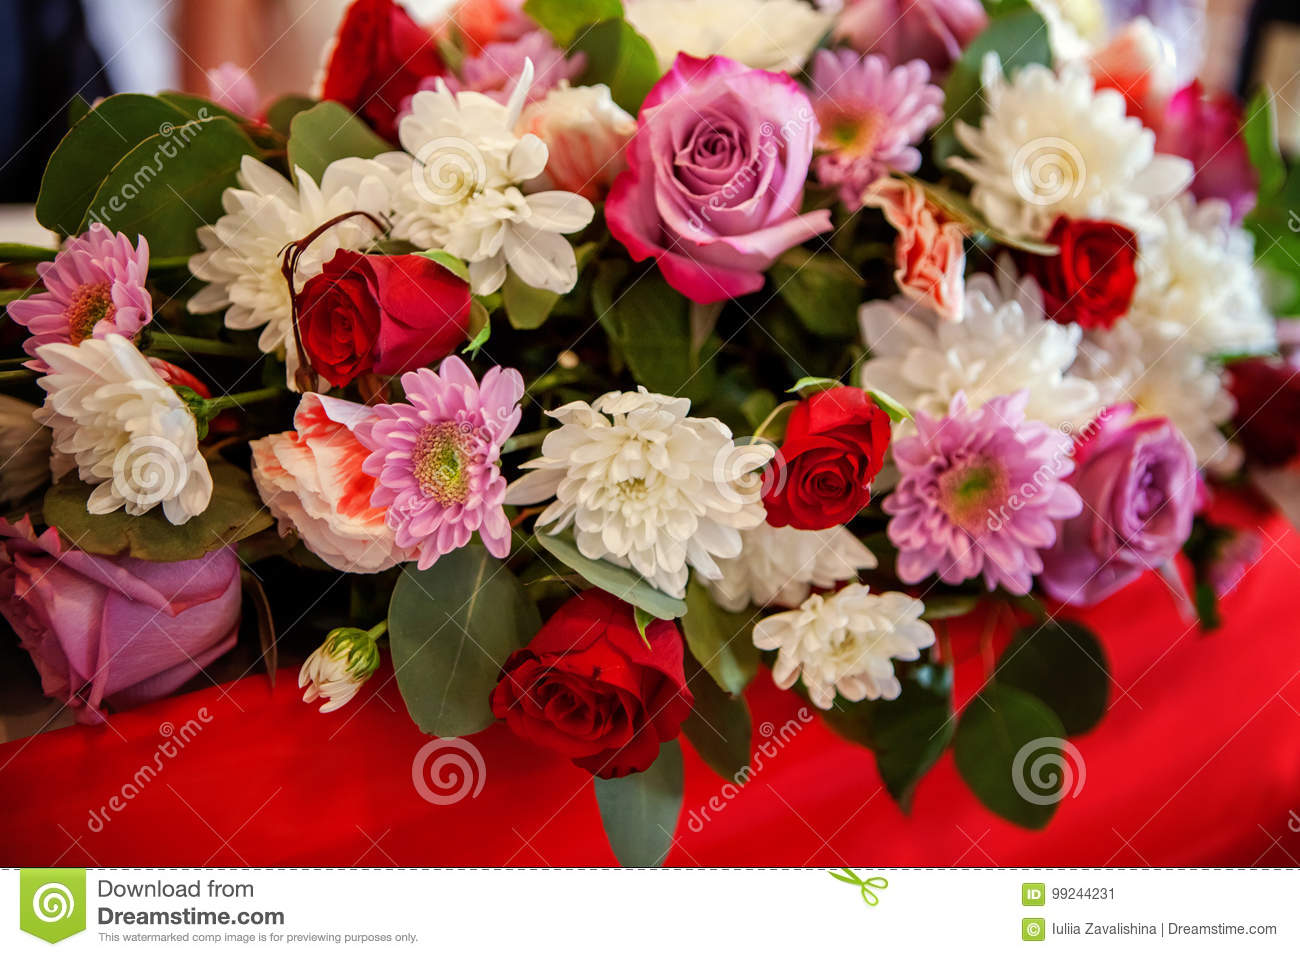 Wedding flower arrangement with roses and chrysanthemums stock image red and pink rose flowers bouquet with white chrysanthemums arranged for decoration on wedding mightylinksfo